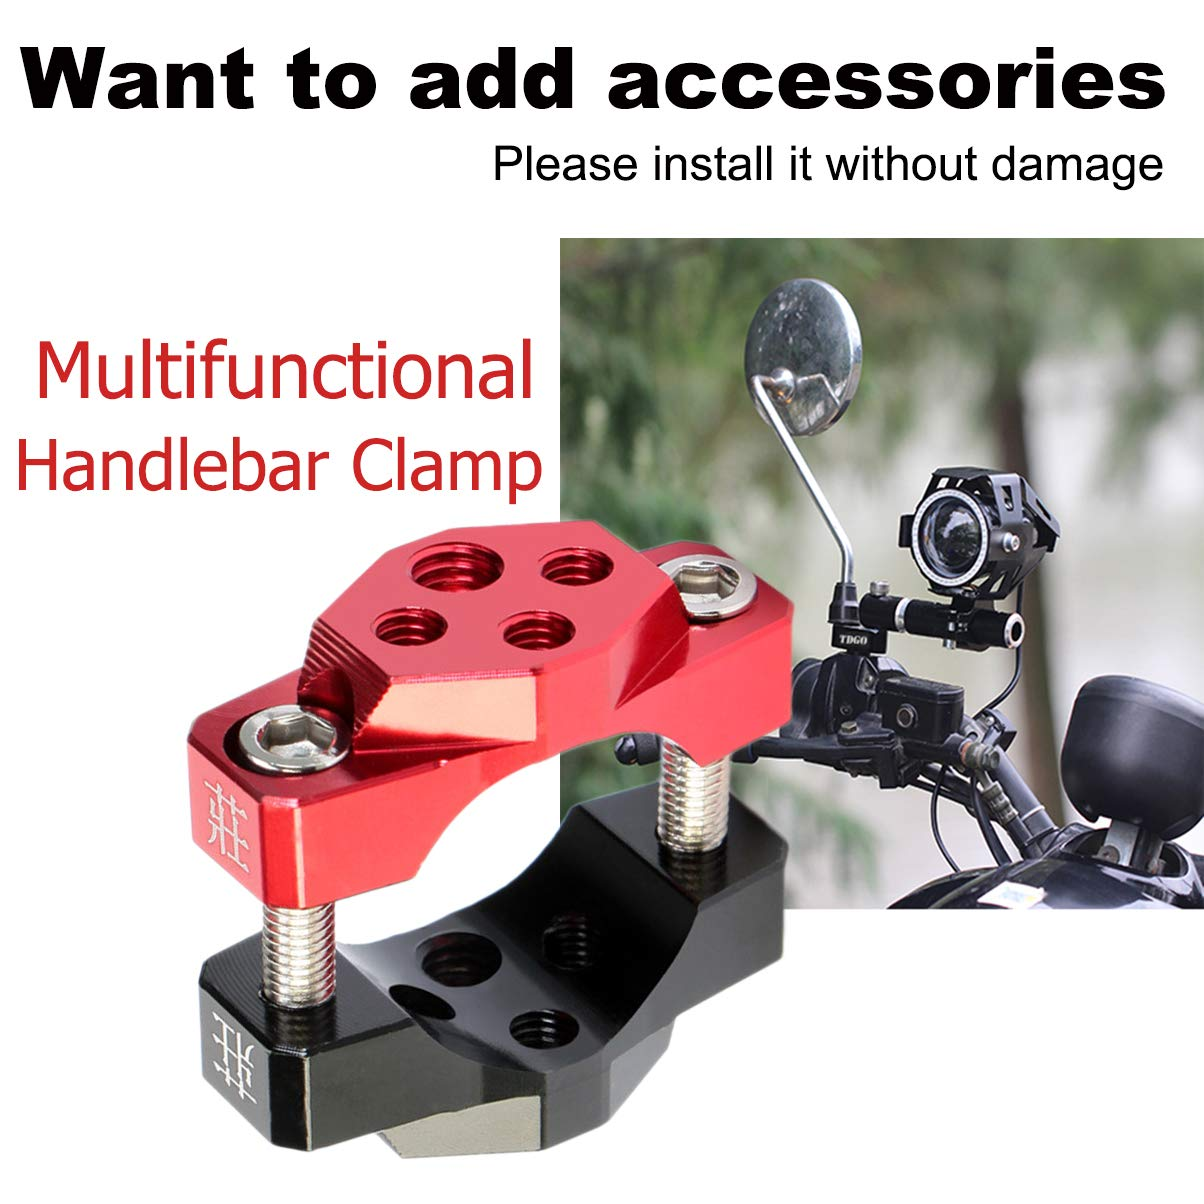 Sportbike MOTOBA Universal Motorcycle Handlebar Clamp Scooter Adjustable Stem Mirror Extender Adapter Aluminum Offroad Light Holder for Harley